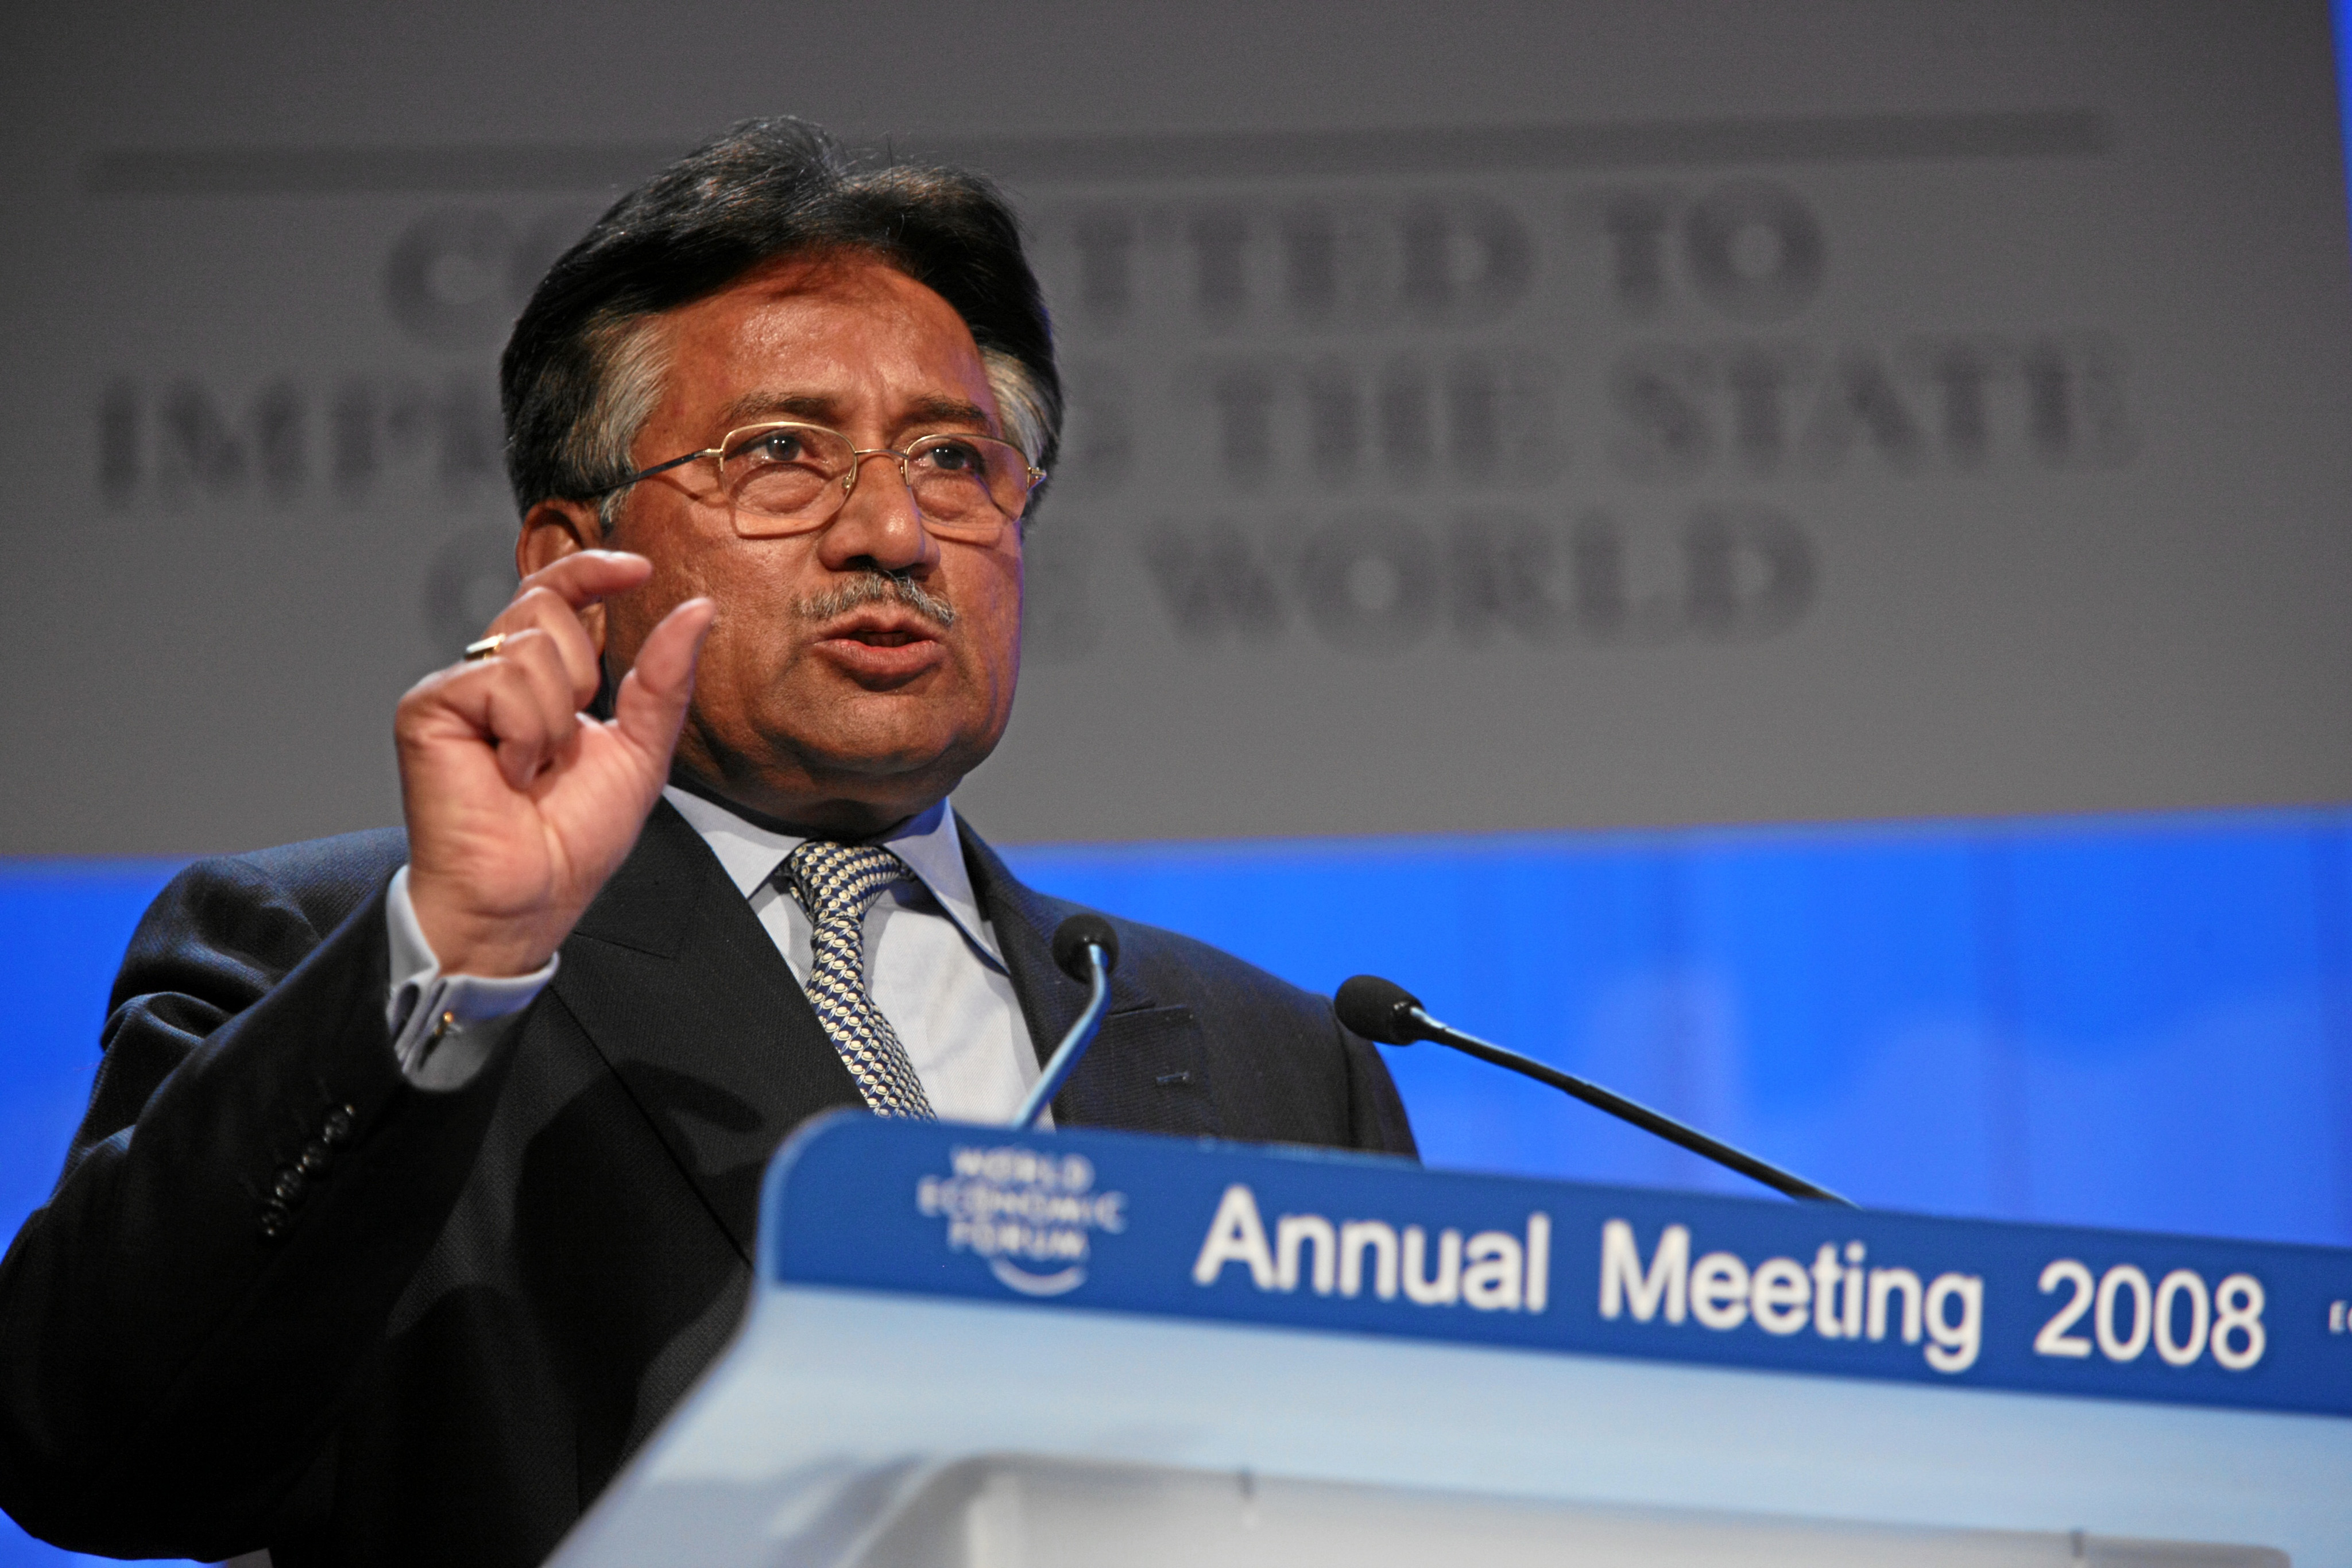 Pervez Musharraf - Wikipedia, the free encyclopedia